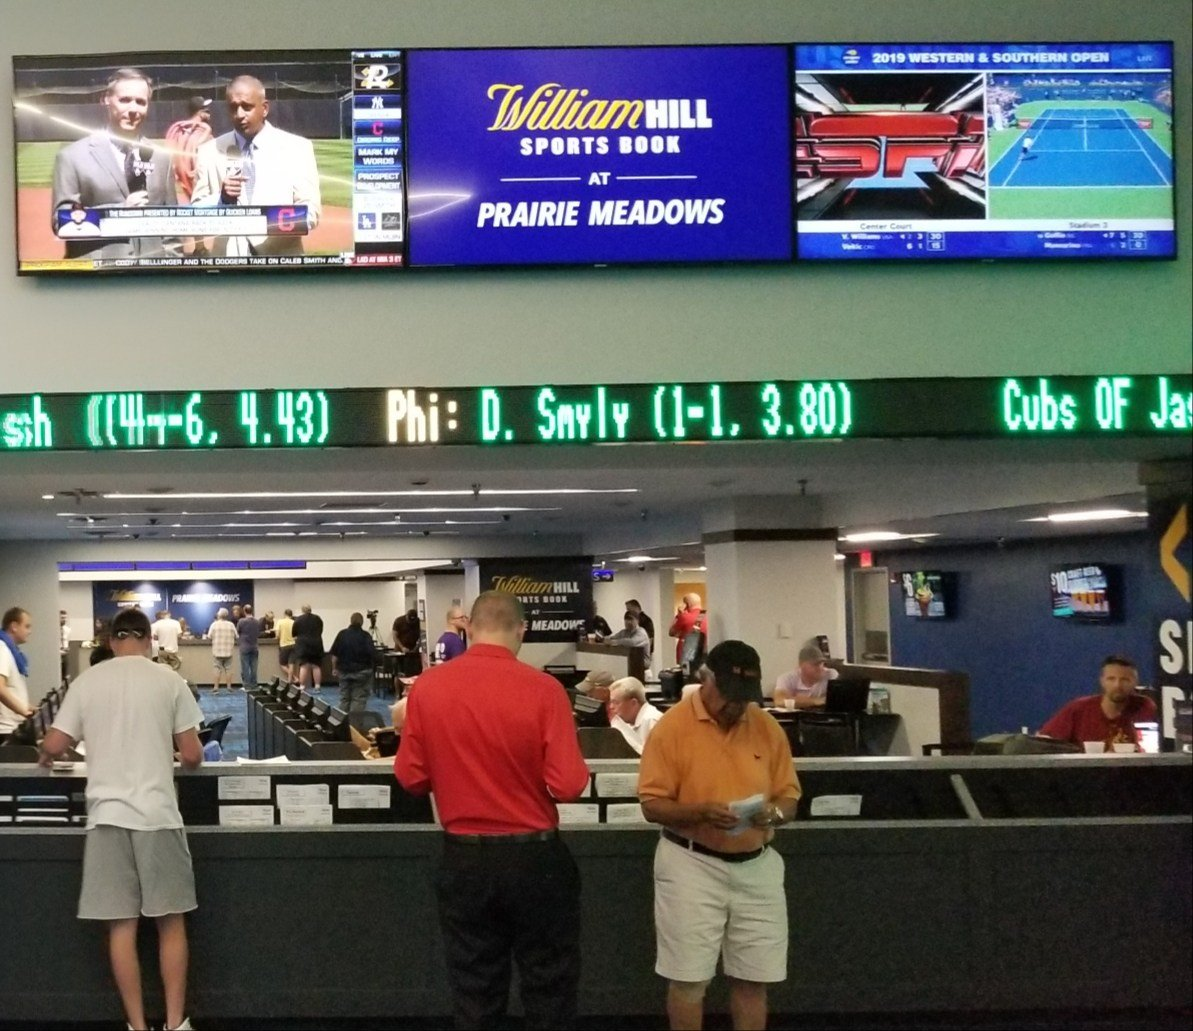 Study Shows Sports Bettors Want to Wager Via TV, Travel to Legal States